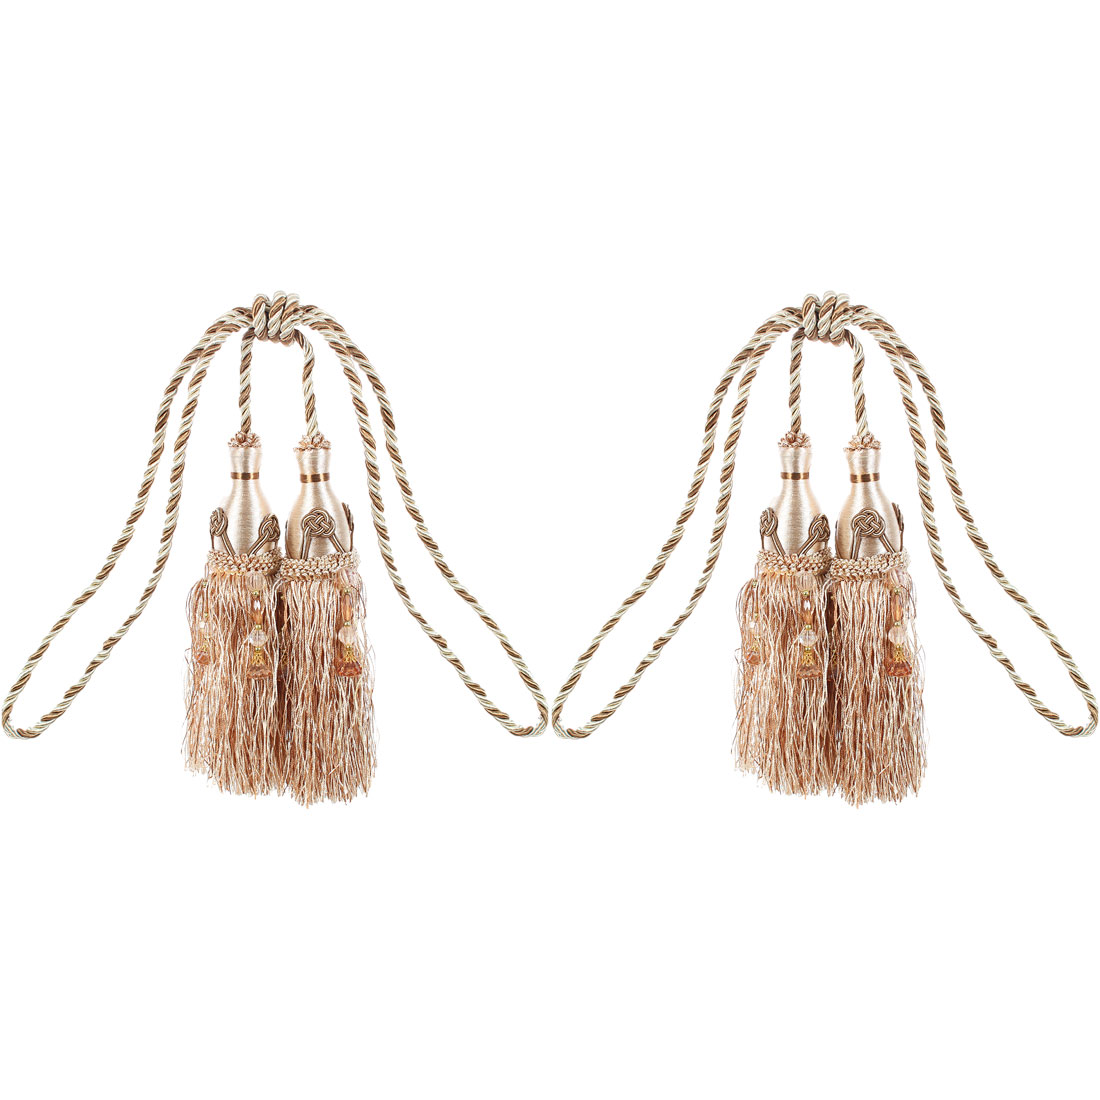 Set of 2 Double Corded Tassel Tiebacks for Curtains or Tapestries in 4 Colours